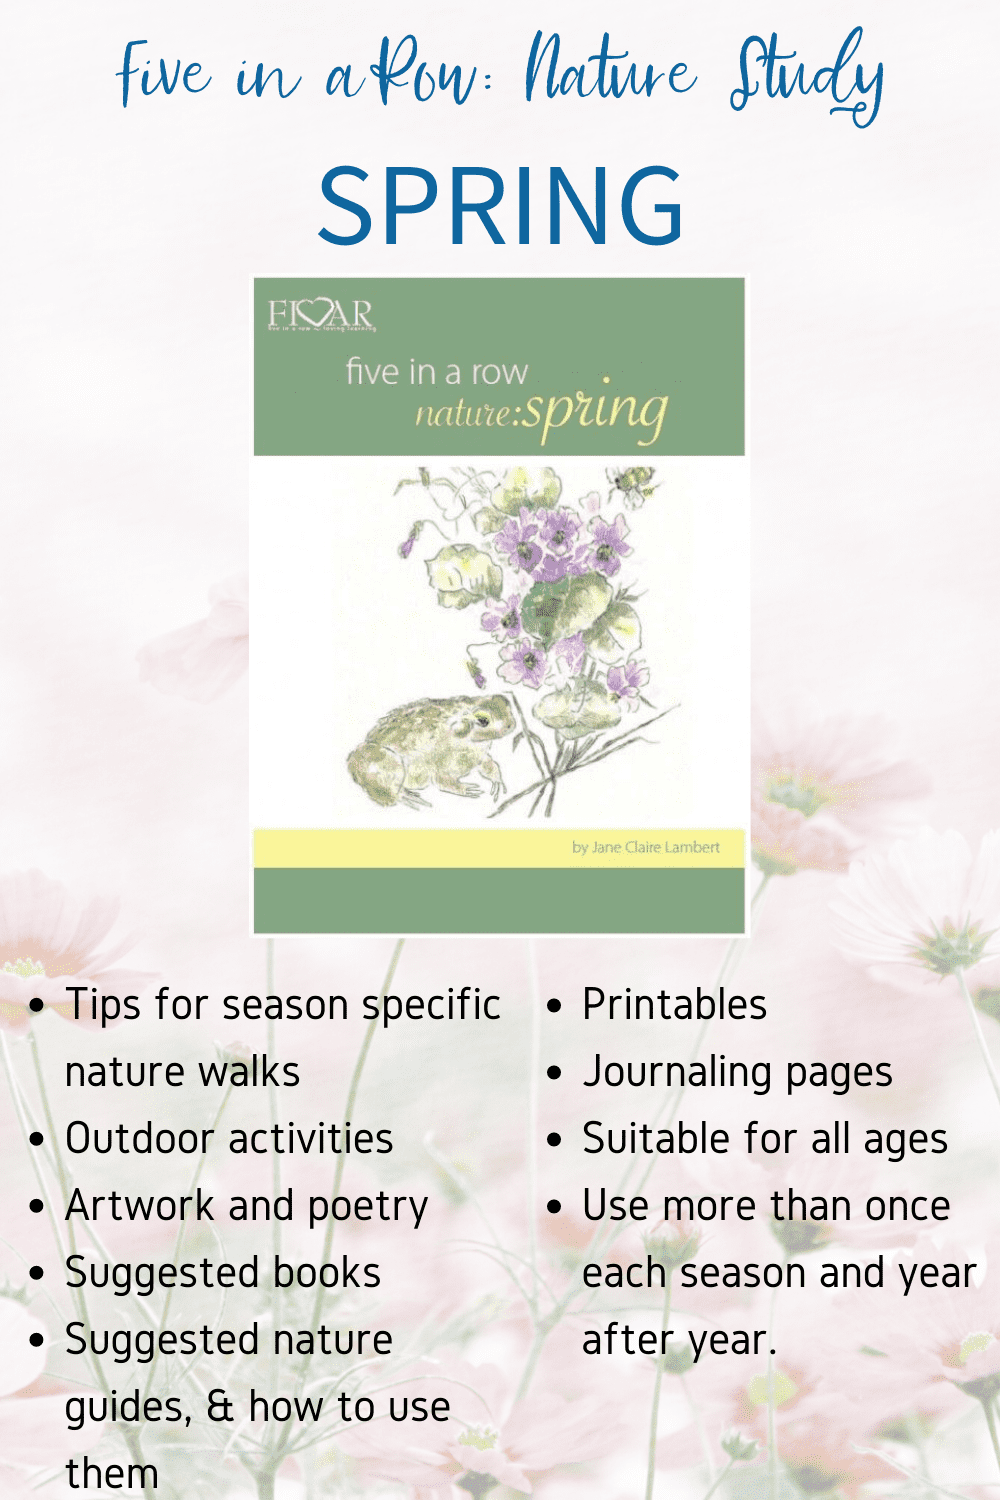 Knowing that planning your own nature study can be a time-consuming task, Jane has written a nature study for each season to encourage your entire family in your exploration of all four seasons! Check out Nature Study Spring!